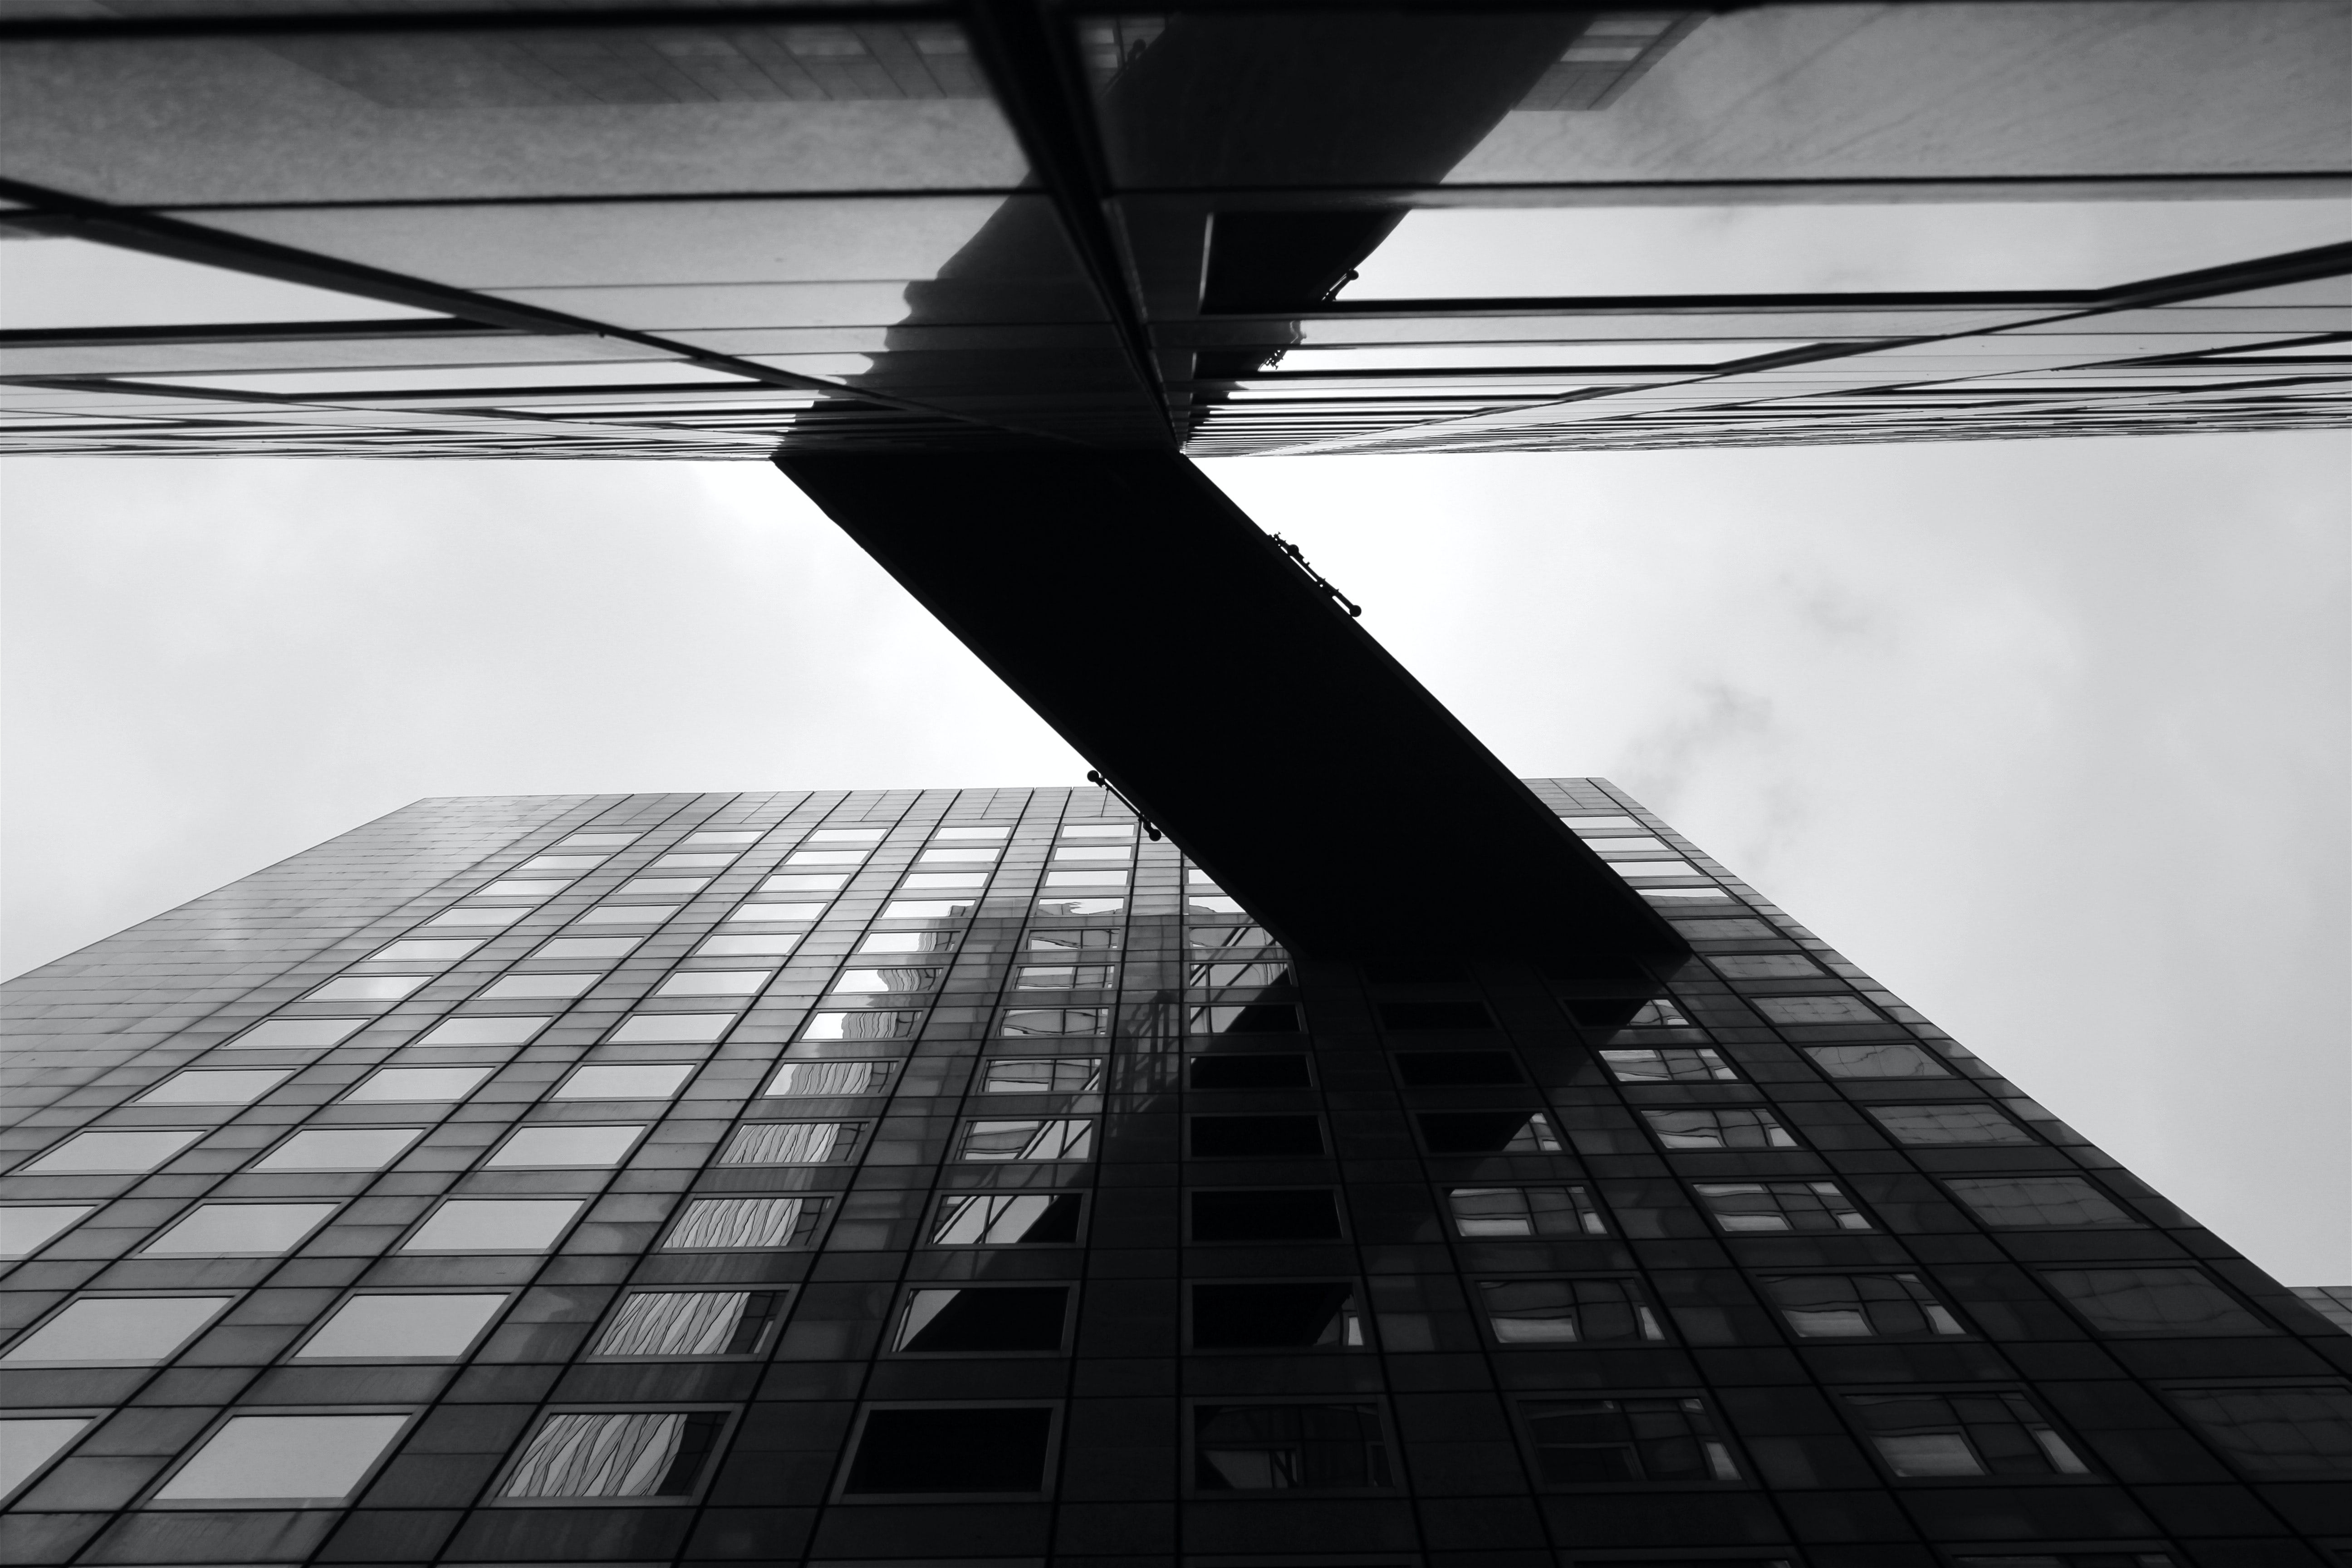 A low-angle shot of a skyway connecting two office buildings